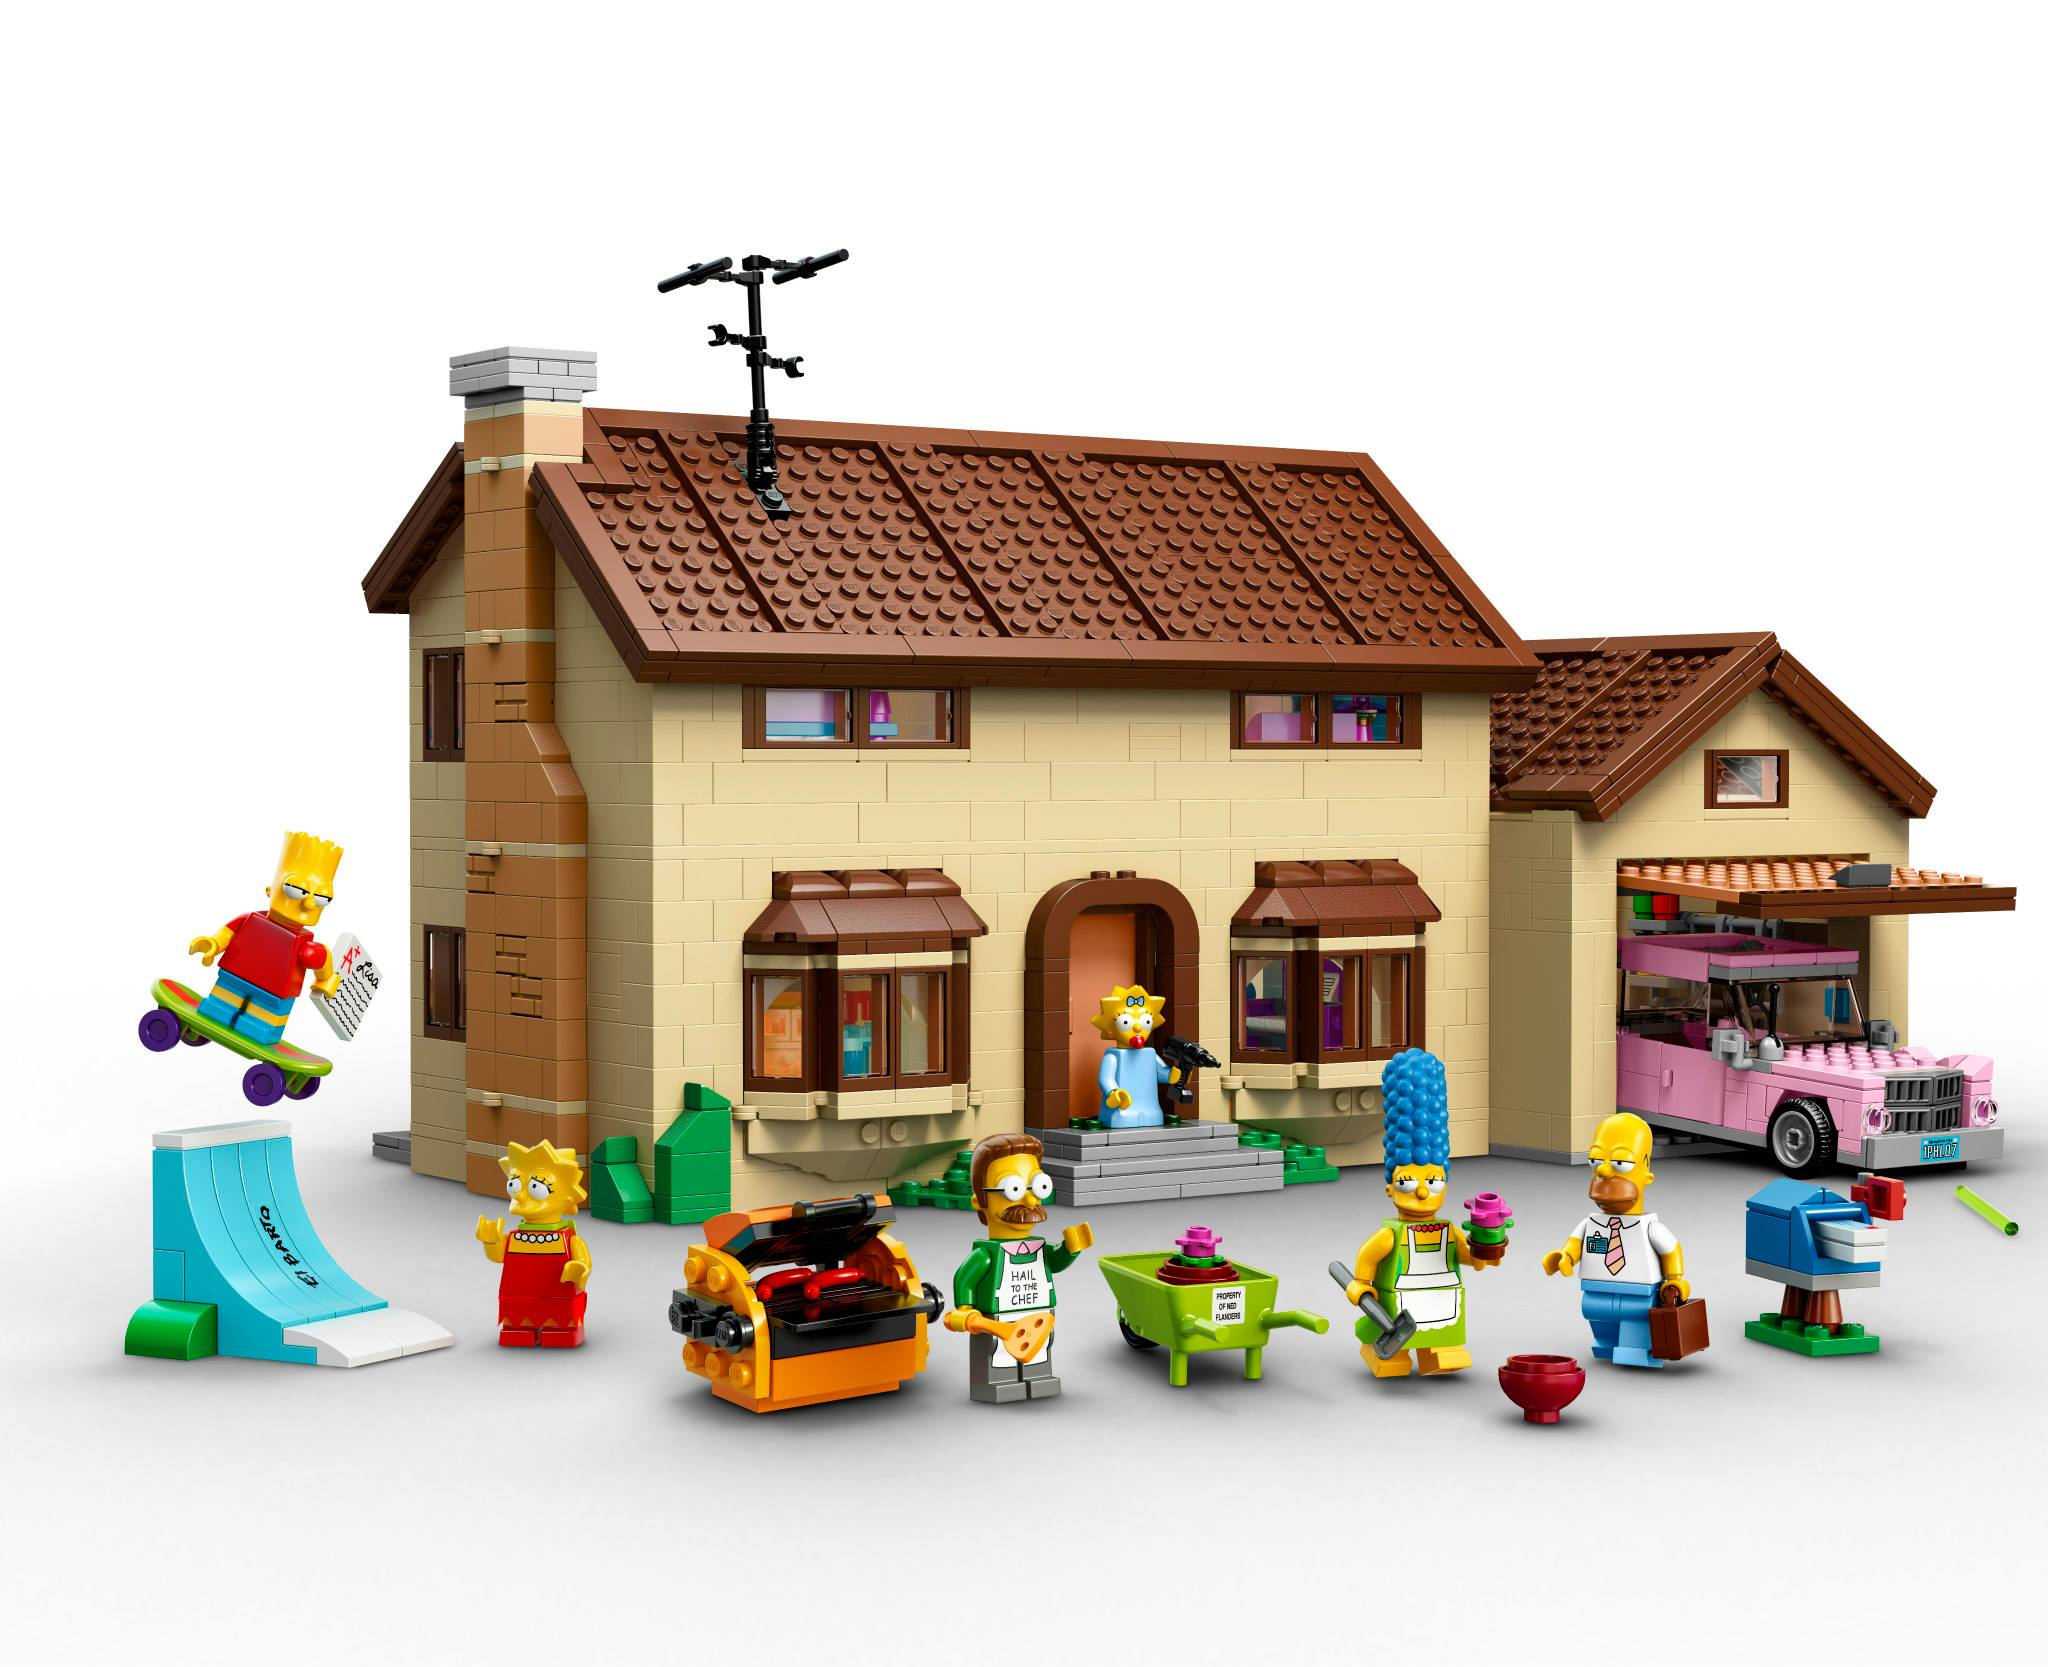 Lego Full House The Simpsons House Coming To Local Lego Retailers Bricking Around